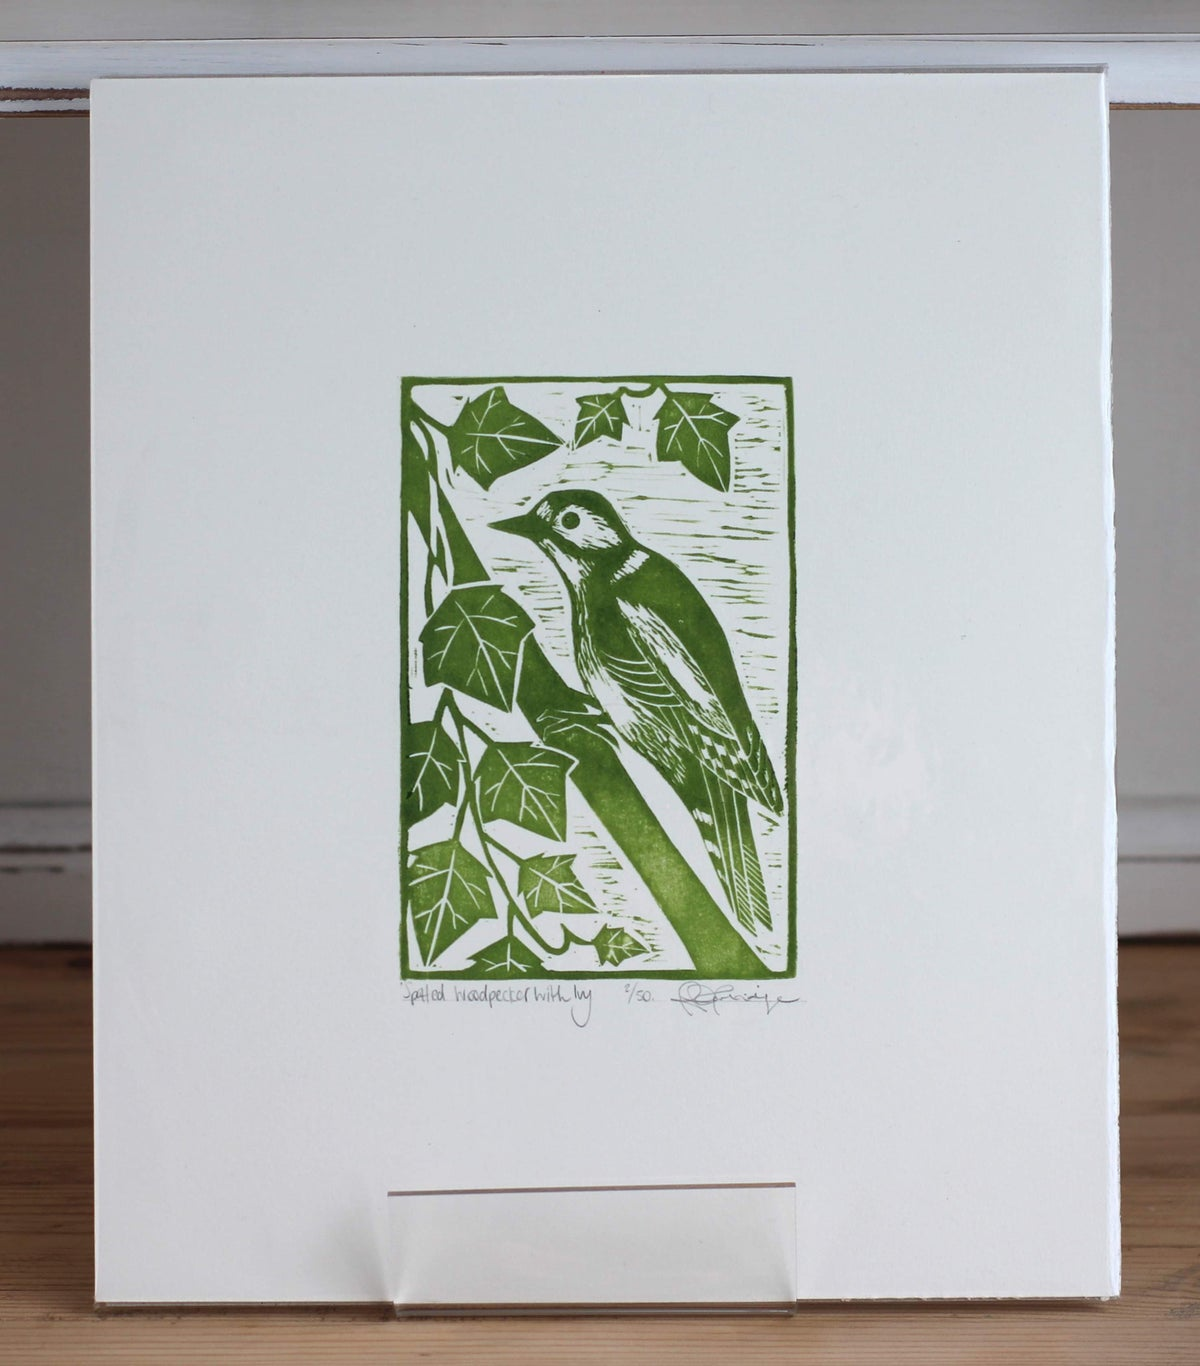 Image of 'Great spotted woodpecker with ivy'